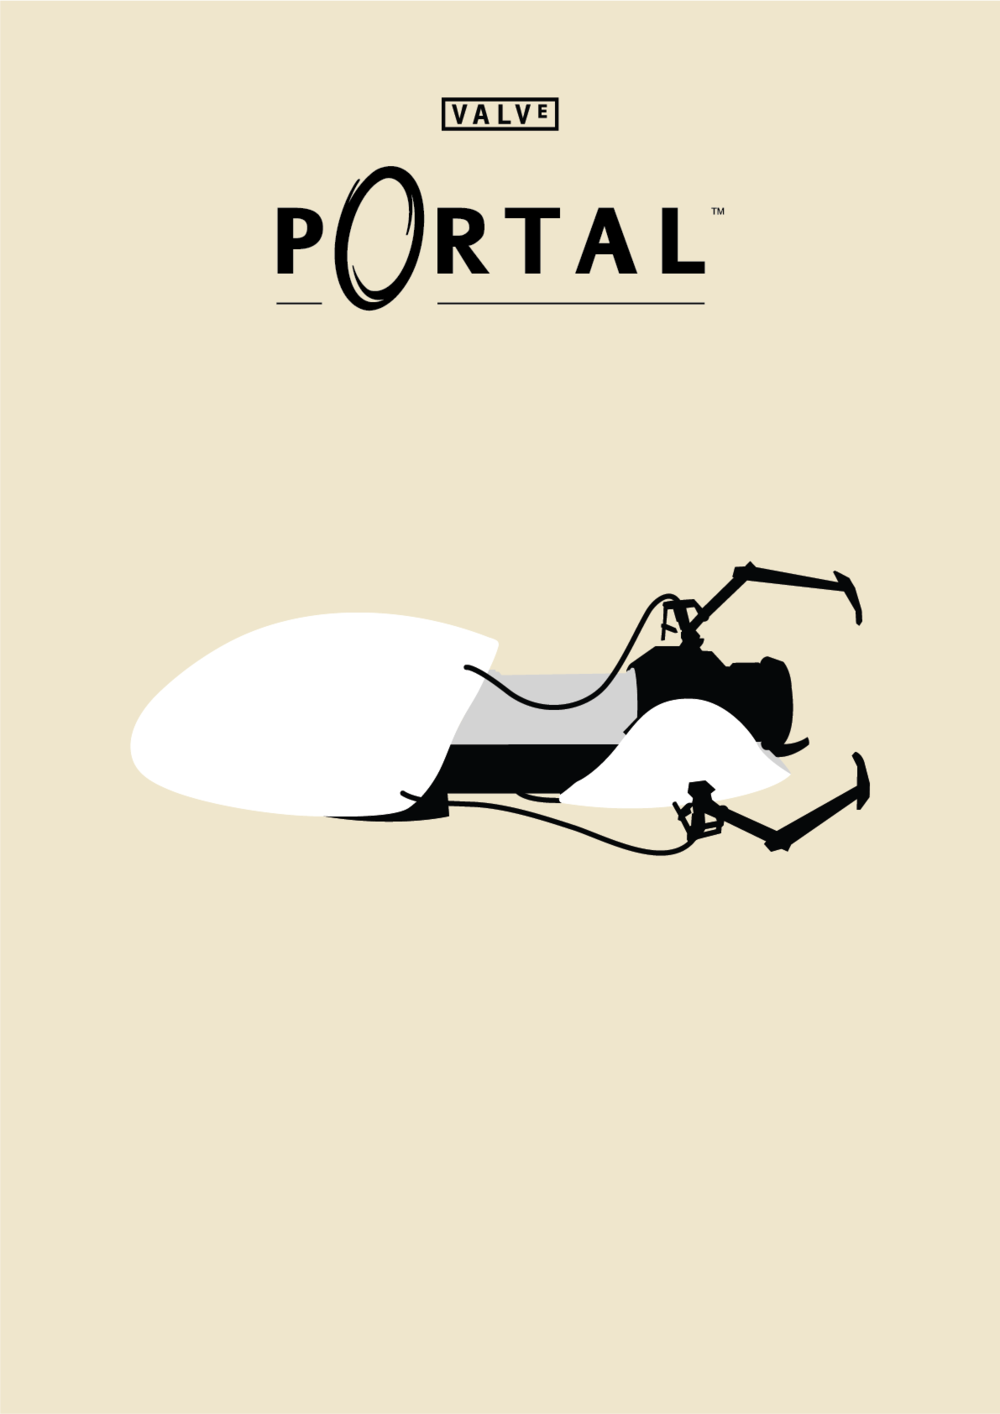 Maram Alesayi | Graphic and Motion Designer - Port Poster with Portal Gun